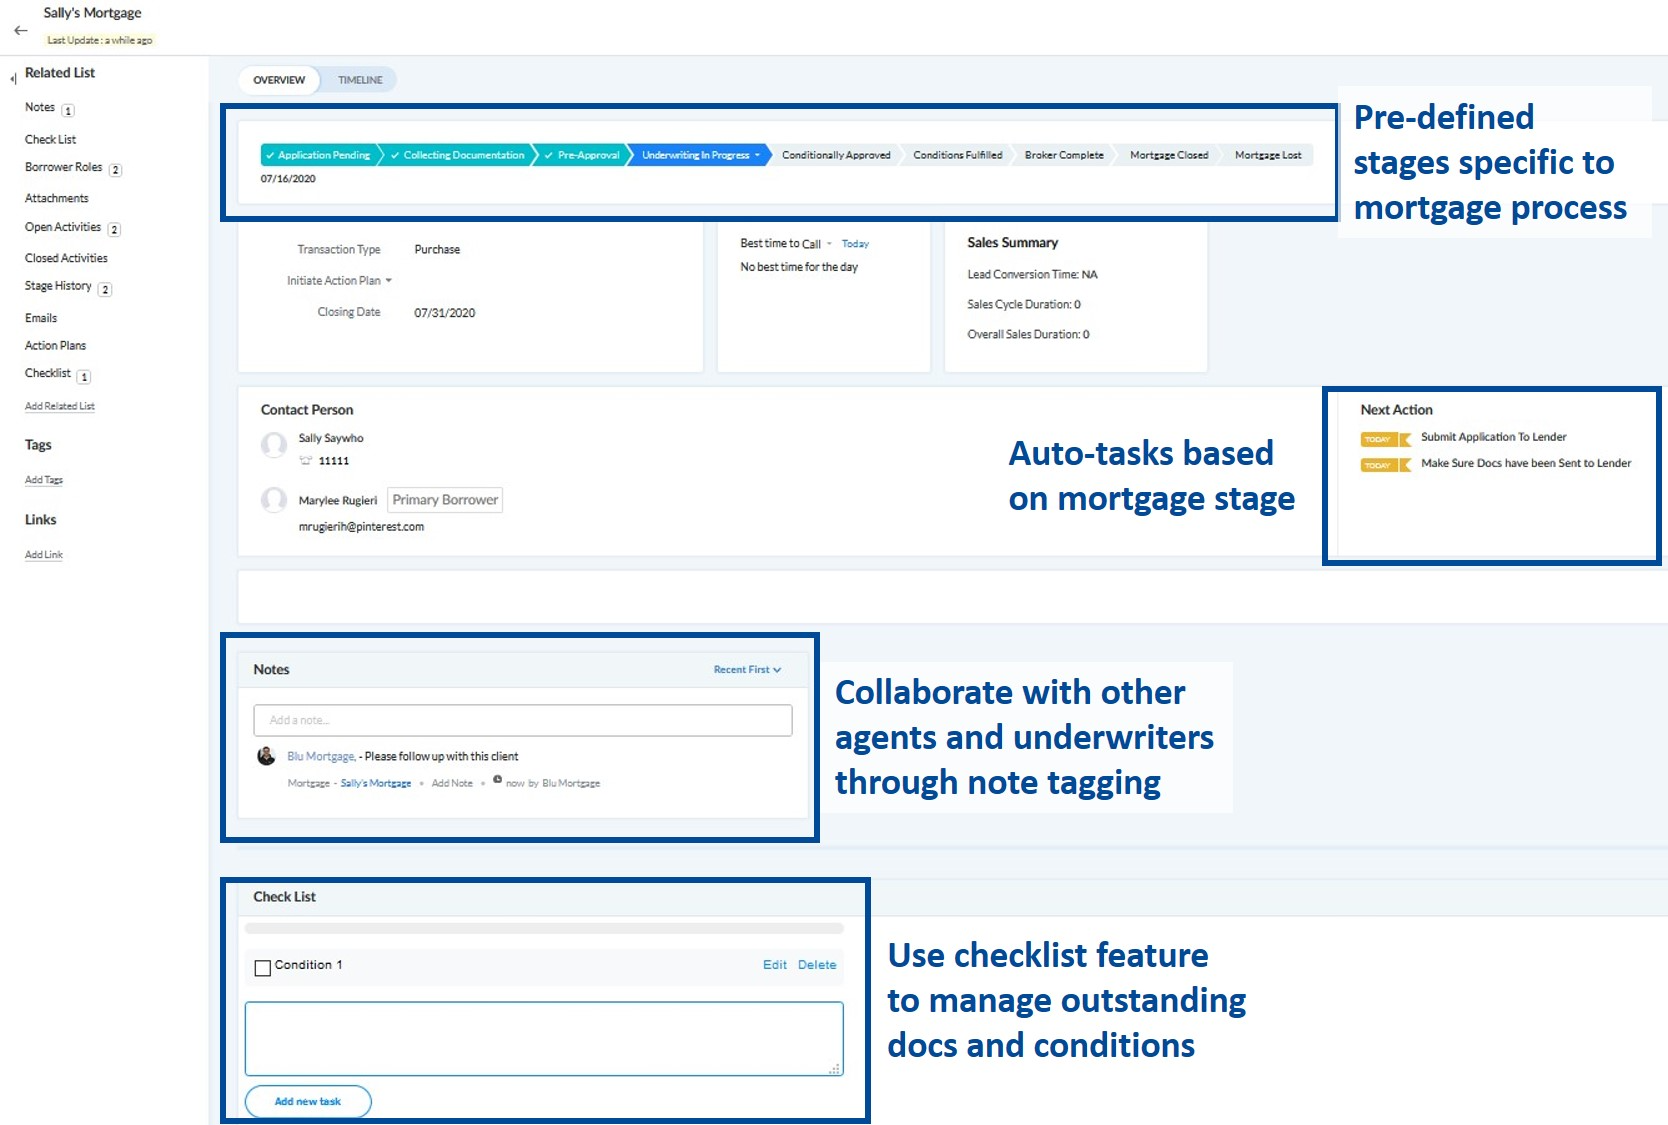 BluMortgage screenshot: A comprehensive view of all items related to a live deal including deal stage, borrowers, to-do list items, collaboration notes and outstanding conditions